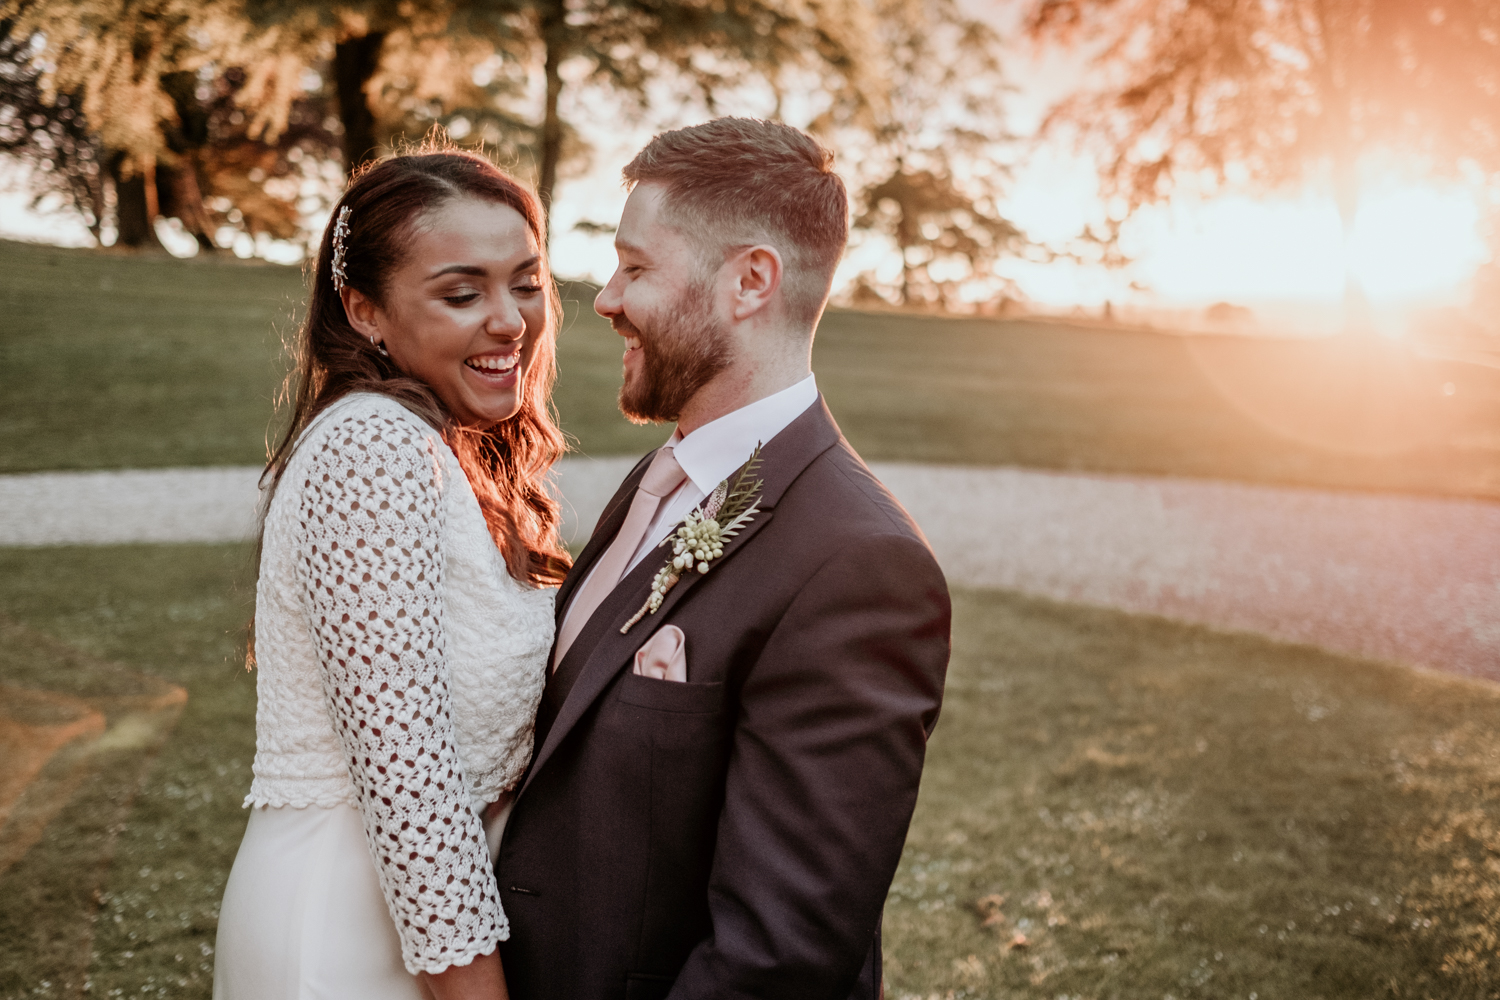 golden hour wedding portrait at Coombe Lodge Blagdon wedding venue